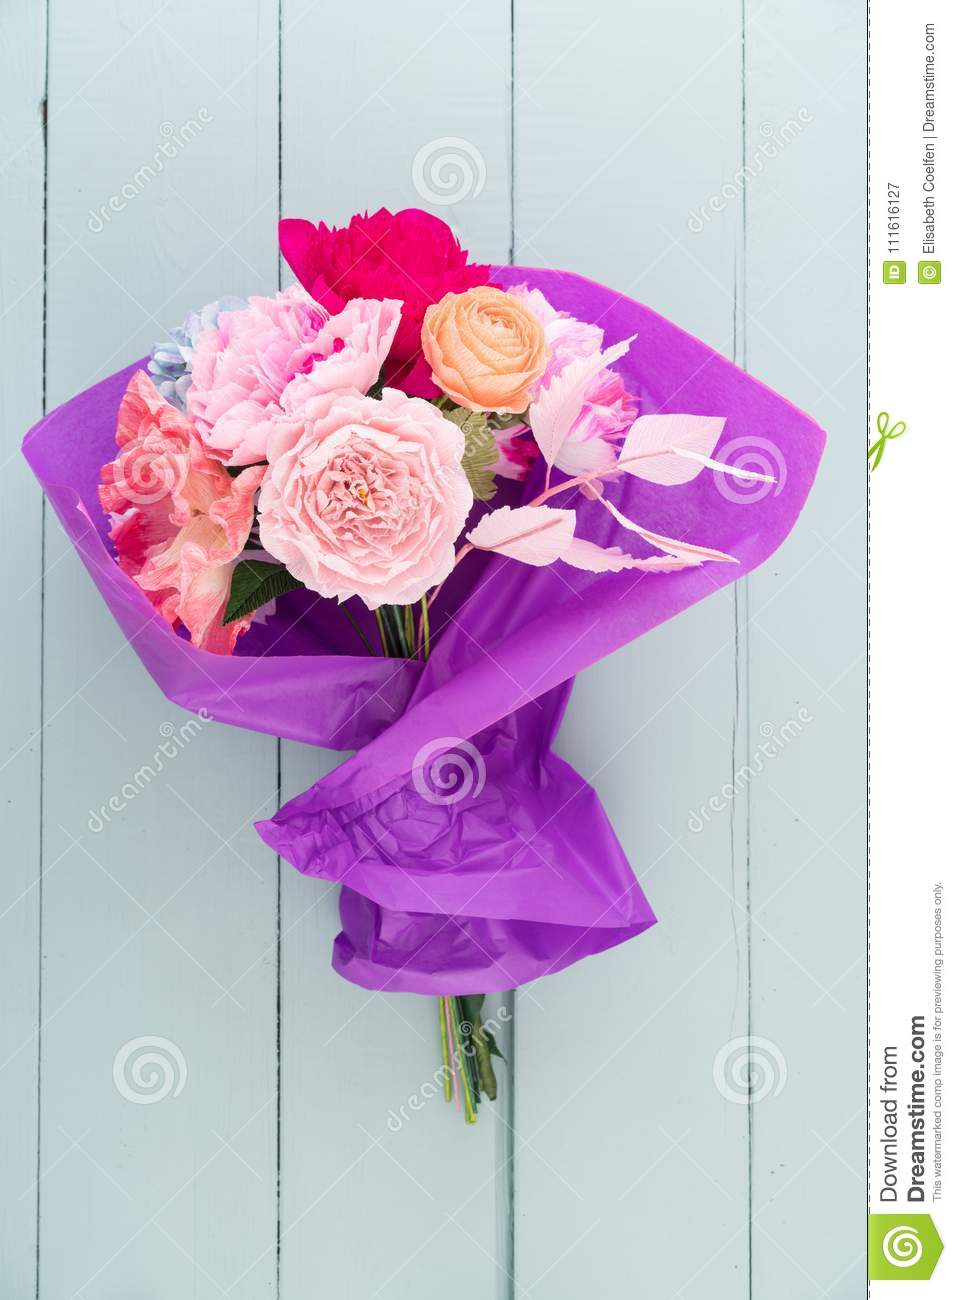 Crepe Paper Flower Bouquet Stock Image Image Of Handmade 111616127